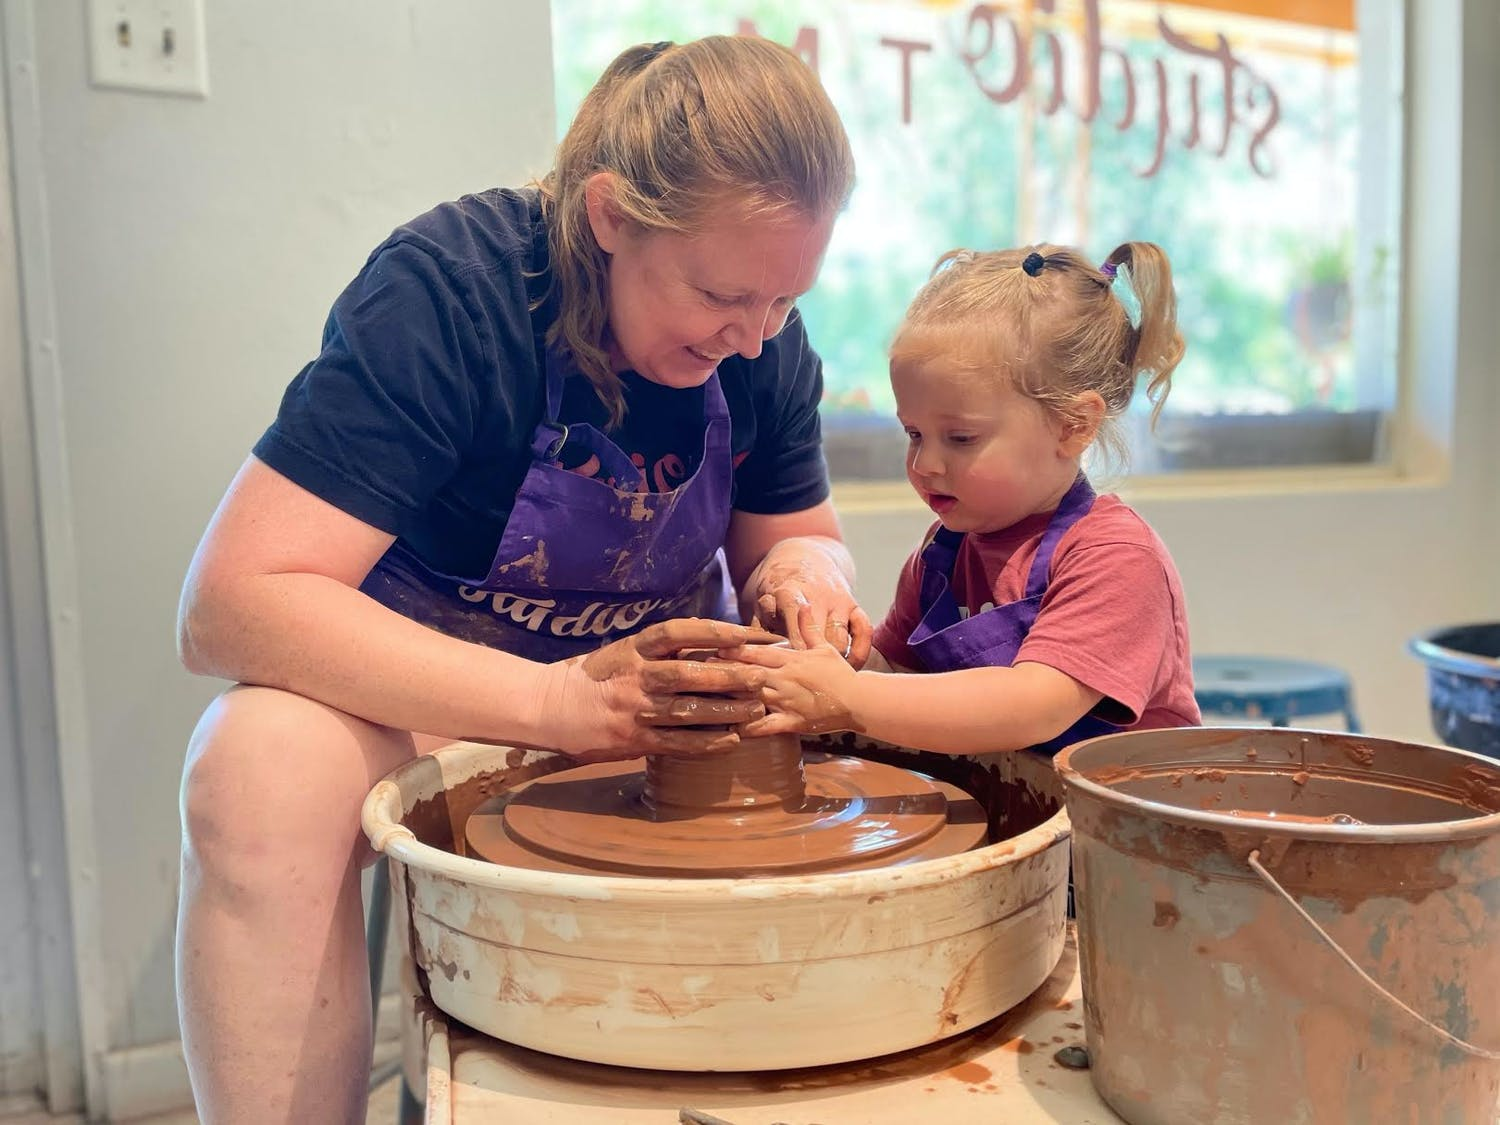 """Owners of Studio TM Ceramics Sara Truman and Naomi Mostkoff said their daughter Hazel started hanging out around the shop, where she """"likes getting her hands dirty,"""" according to Mostkoff. (Courtesy to the Alligator)"""